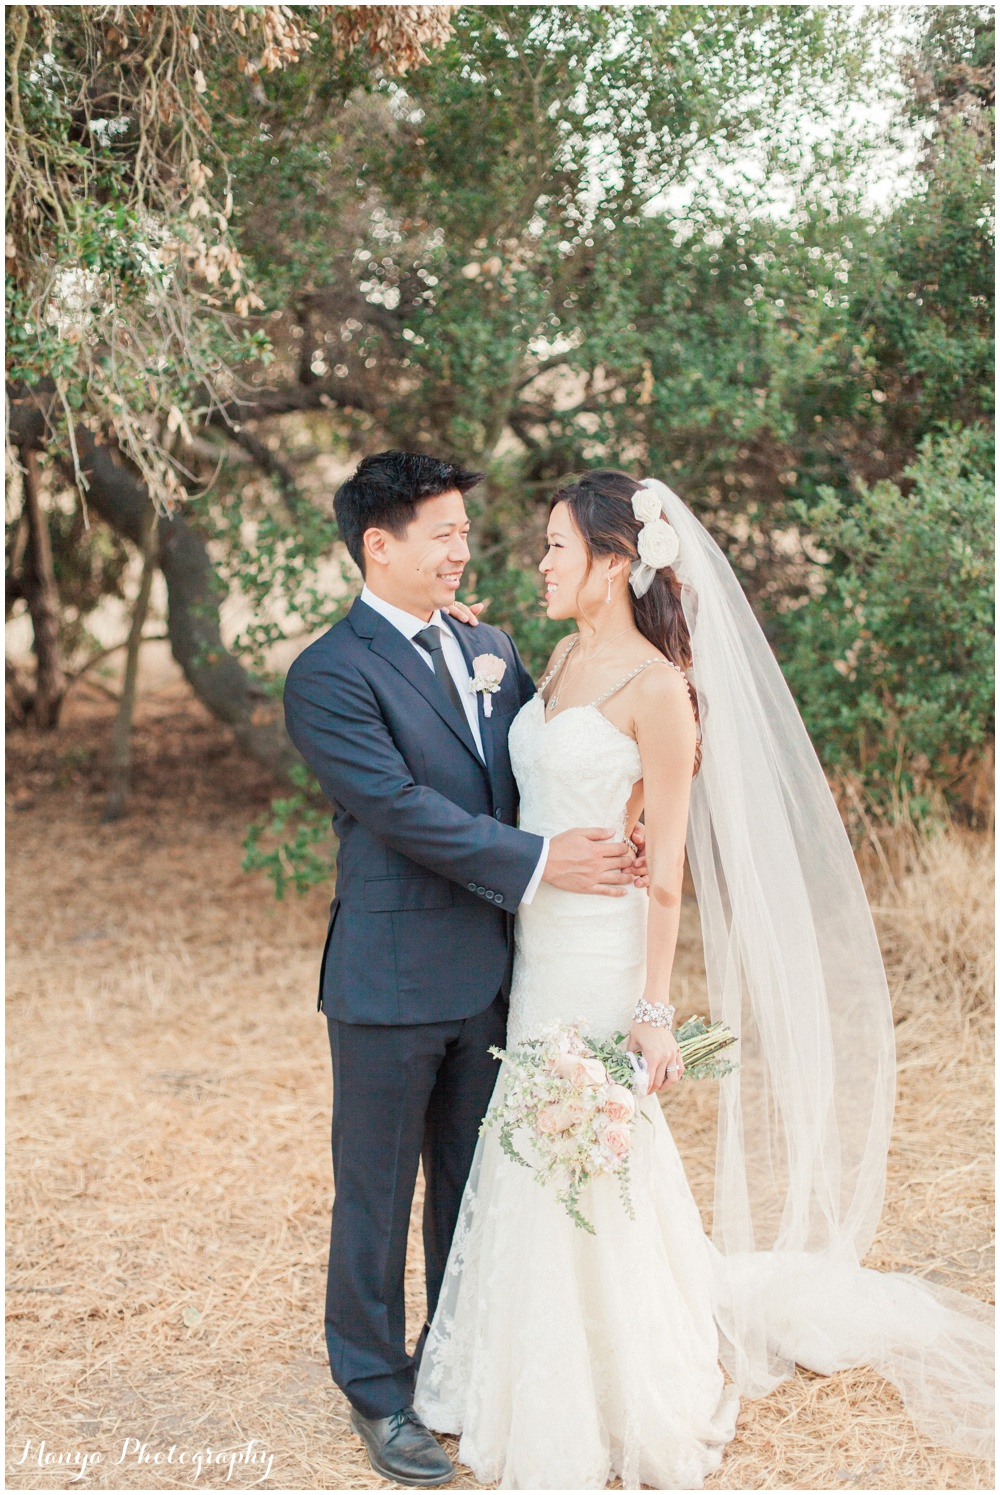 MandM_Wedding_Orange_County_Wedding_Photographer_Manya_Photography_Carbon_Thomas_F_Riley_Wilderness_Park__0067